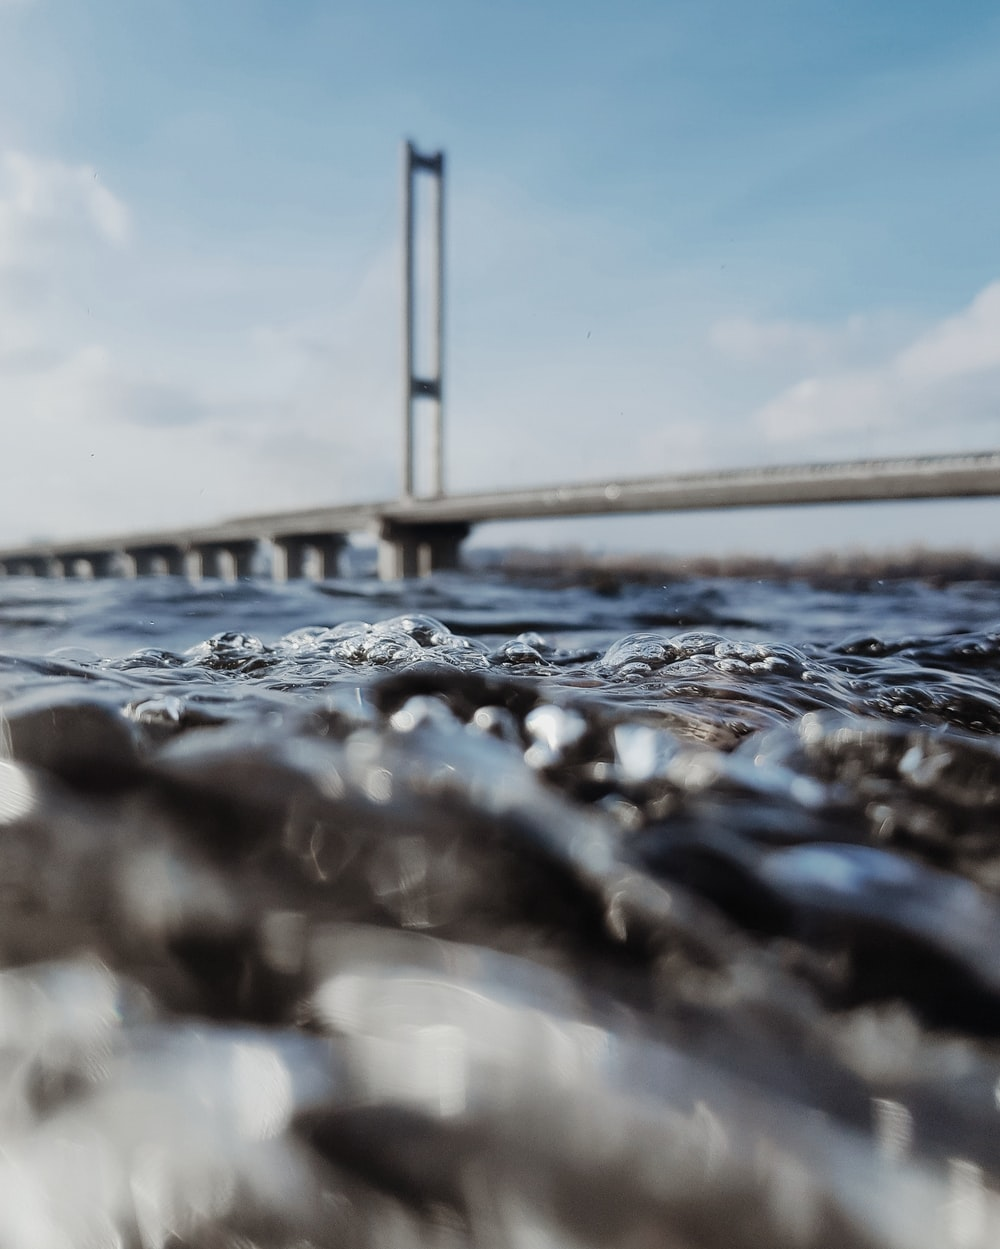 wavy body of water in close-up photography